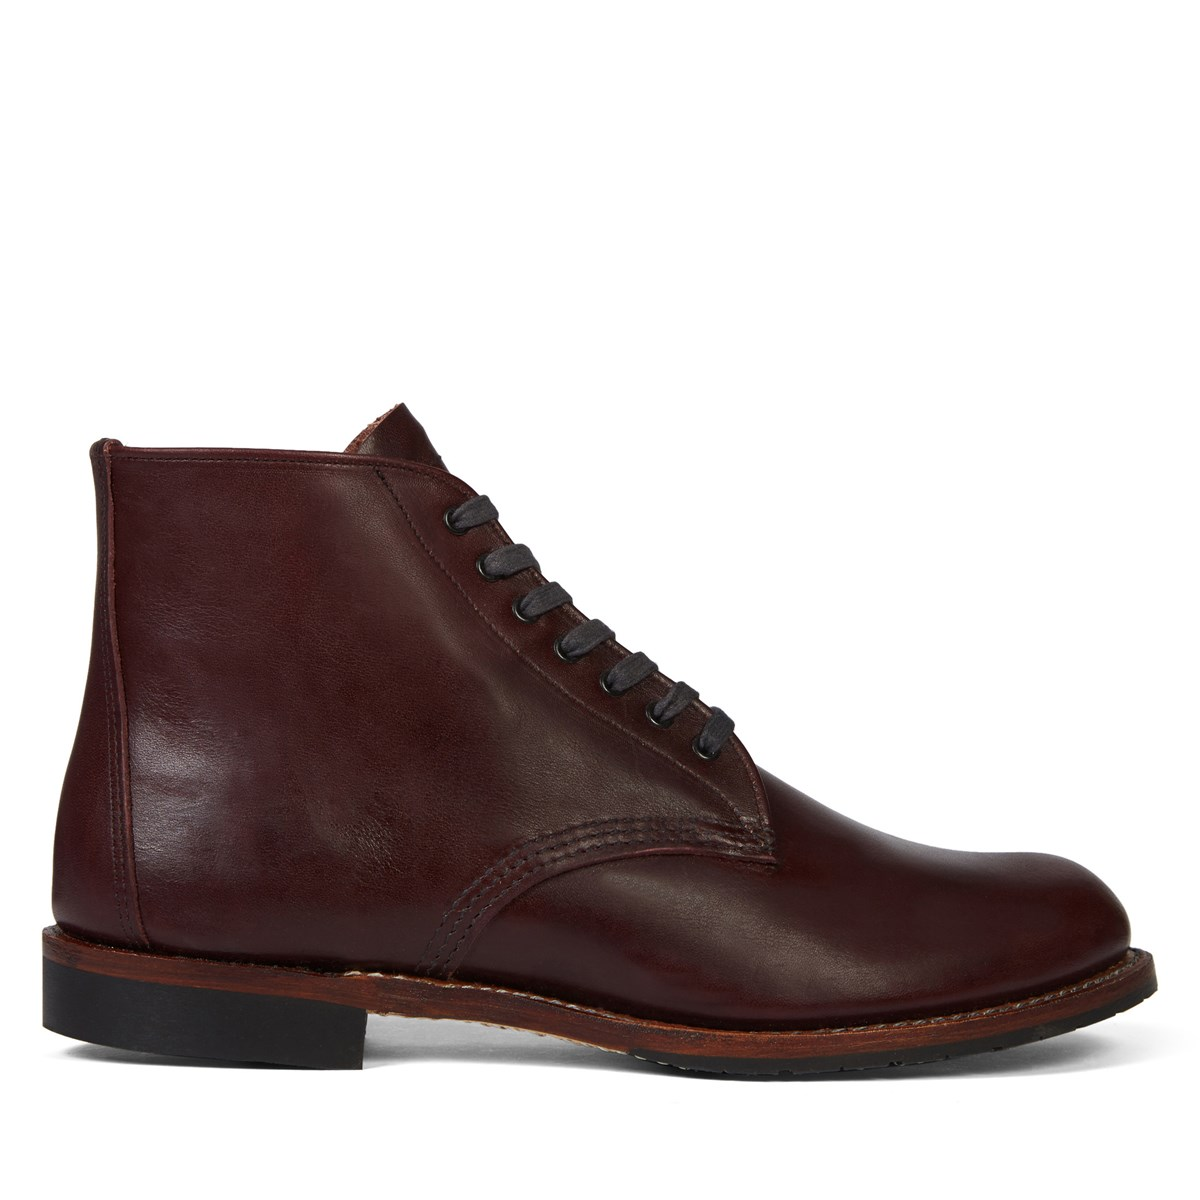 Men's Sheldon Bordeaux Boots